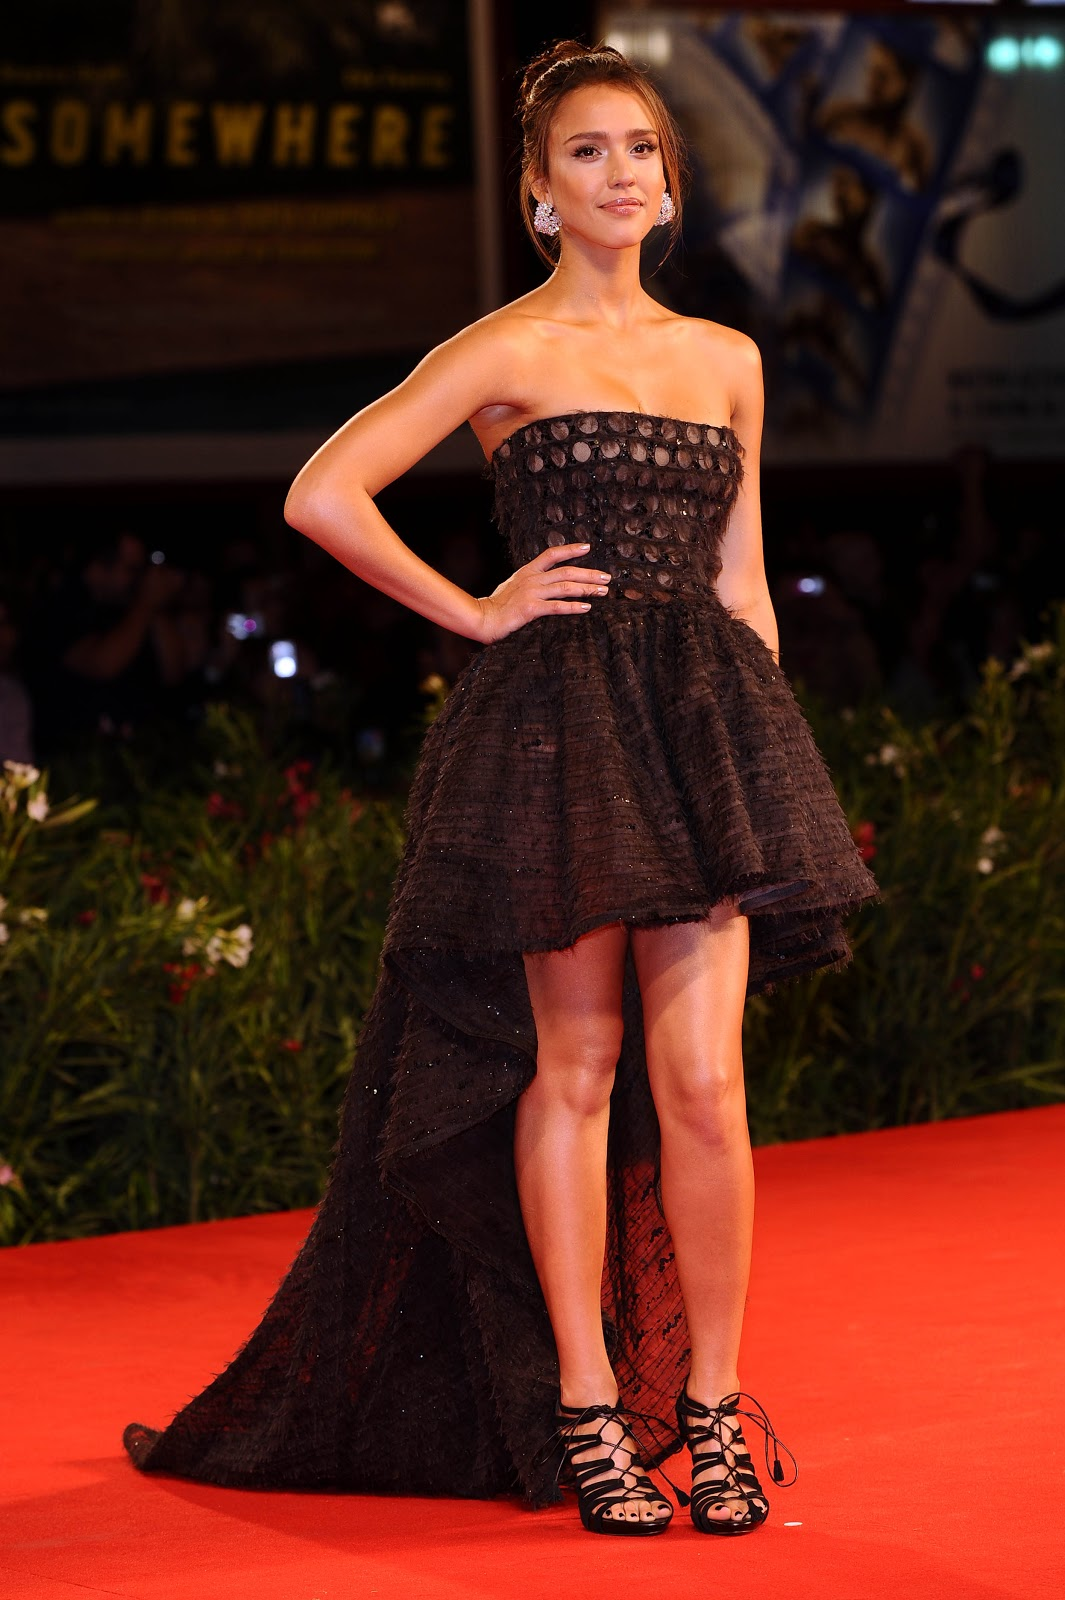 89ef261a3ba Jessica Alba rocked a black strapless Valentino dress with a hi-low hemline  that extended at the back for the Machete premiere in Venice -2010.